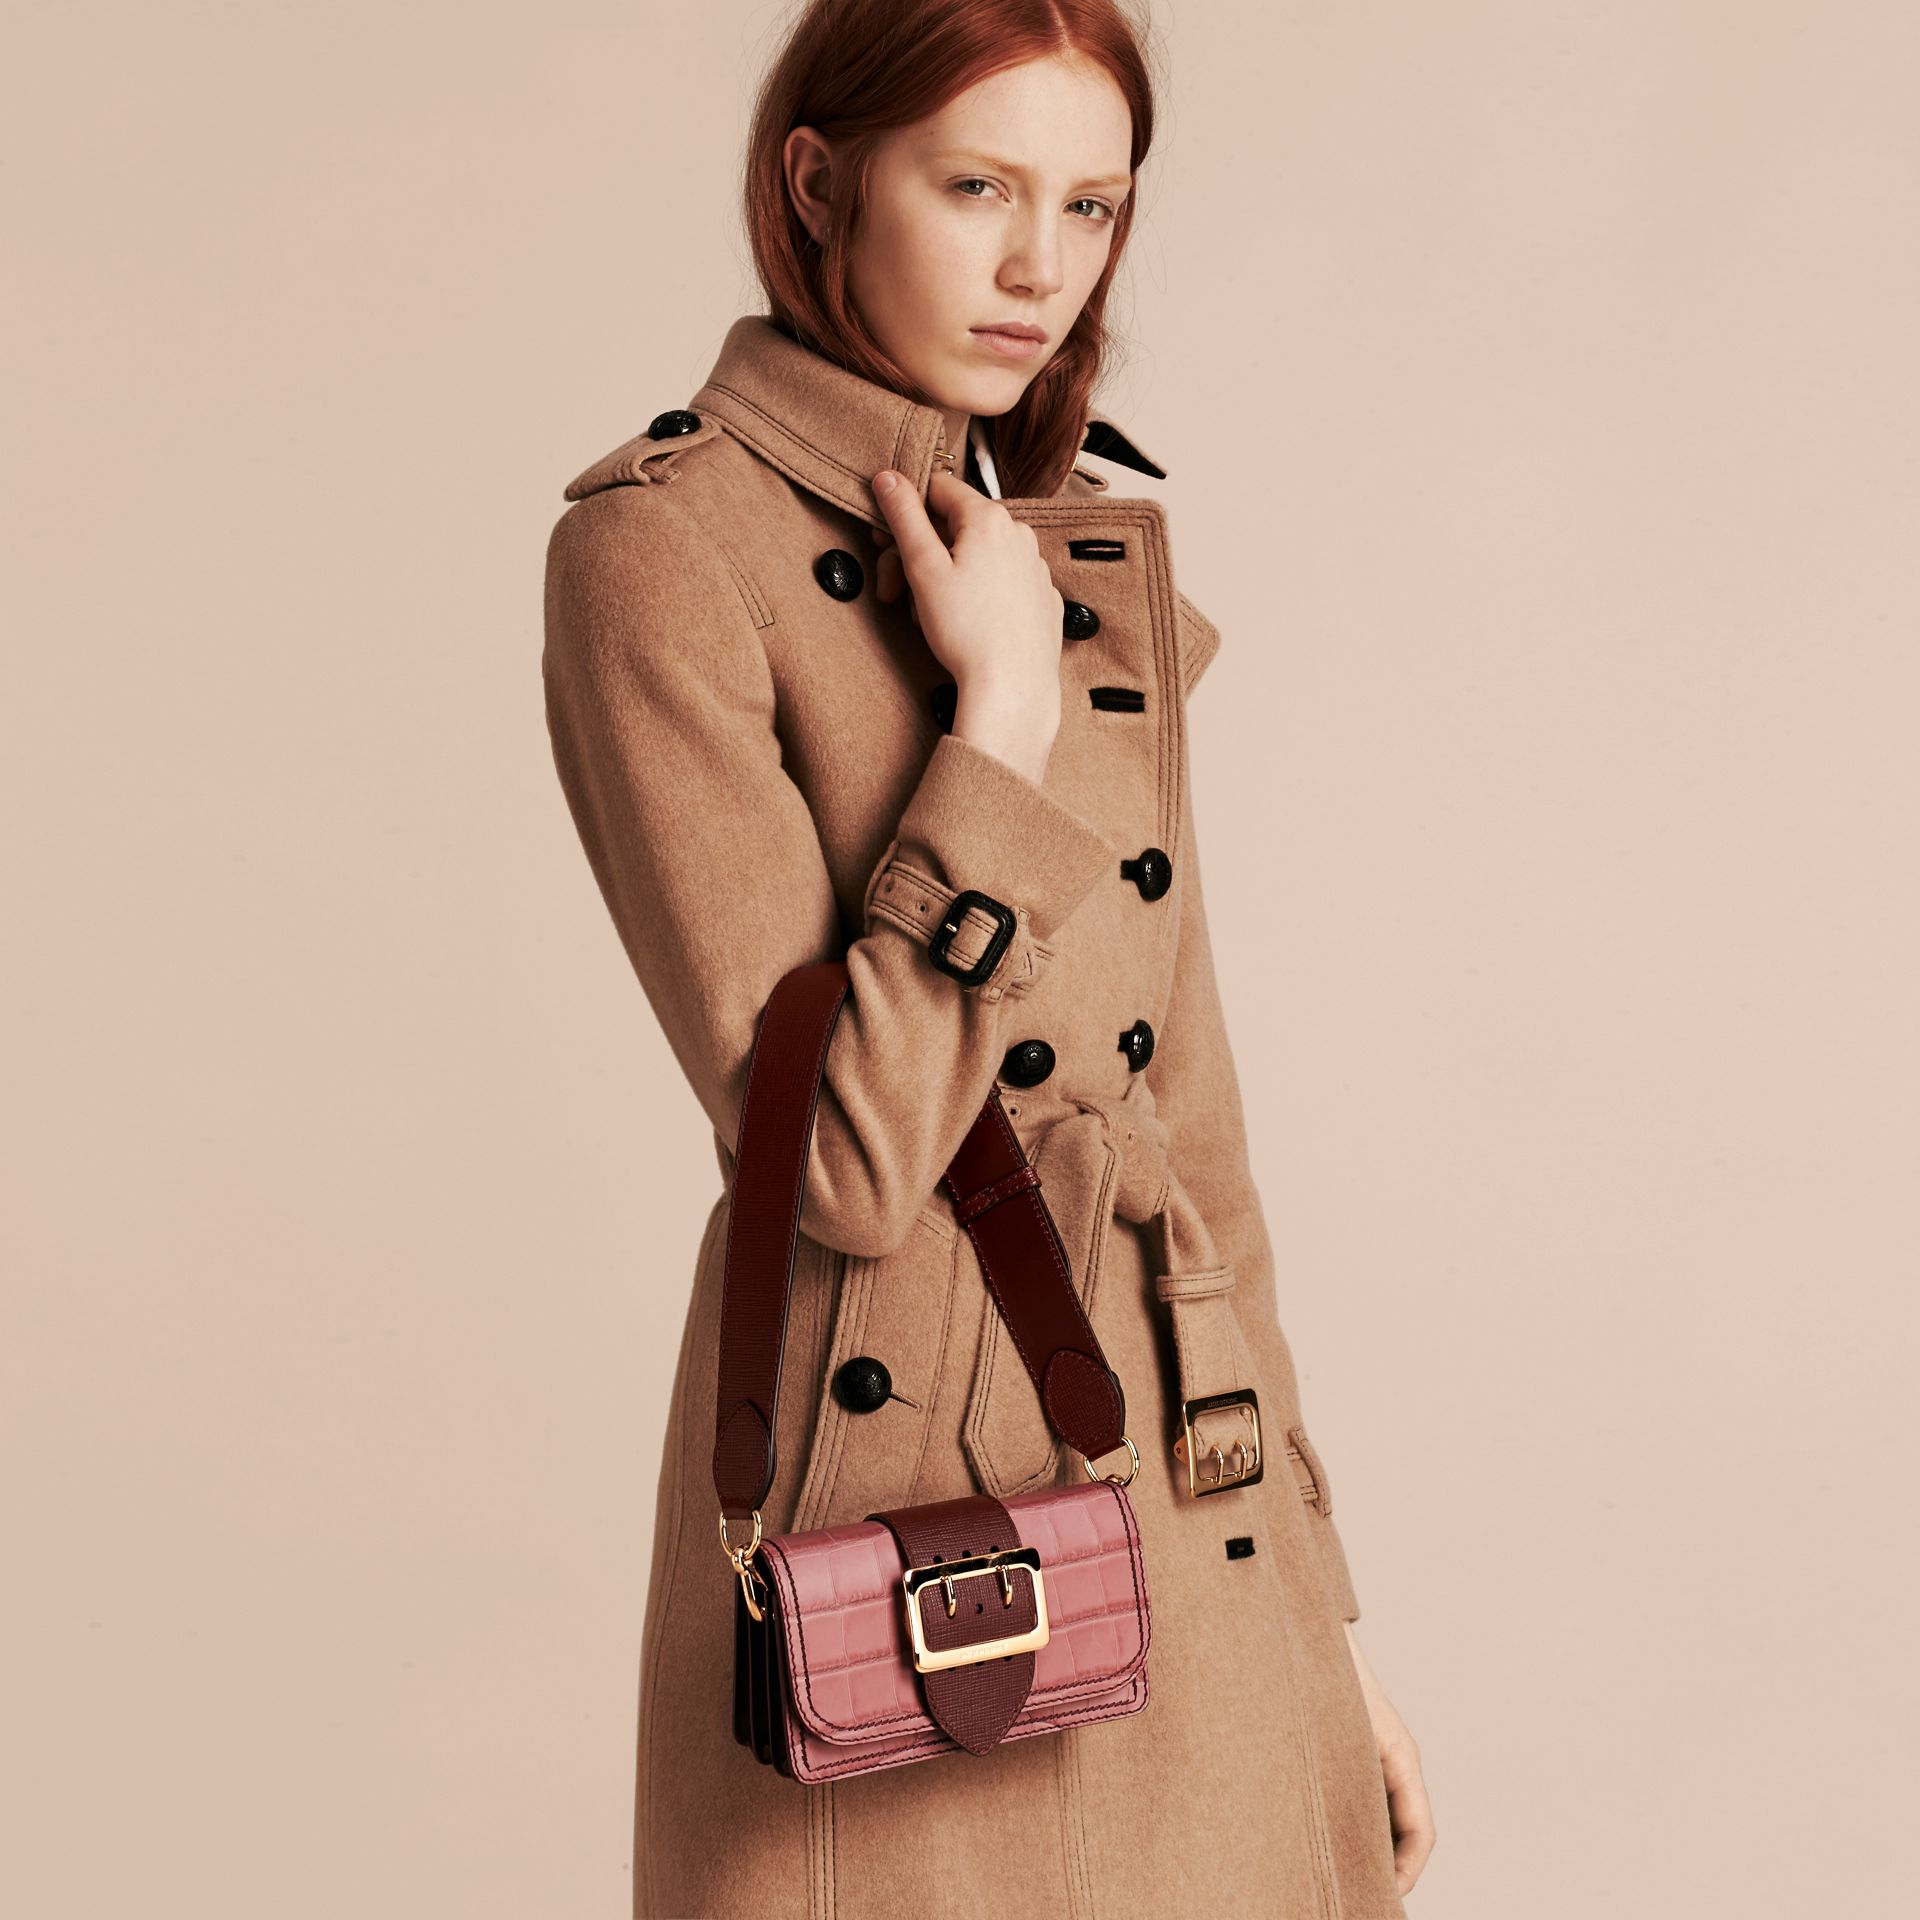 The Small Buckle Bag in Alligator and Leather in Dusky Pink/ Burgundy - Women | Burberry United Kingdom - gallery image 3